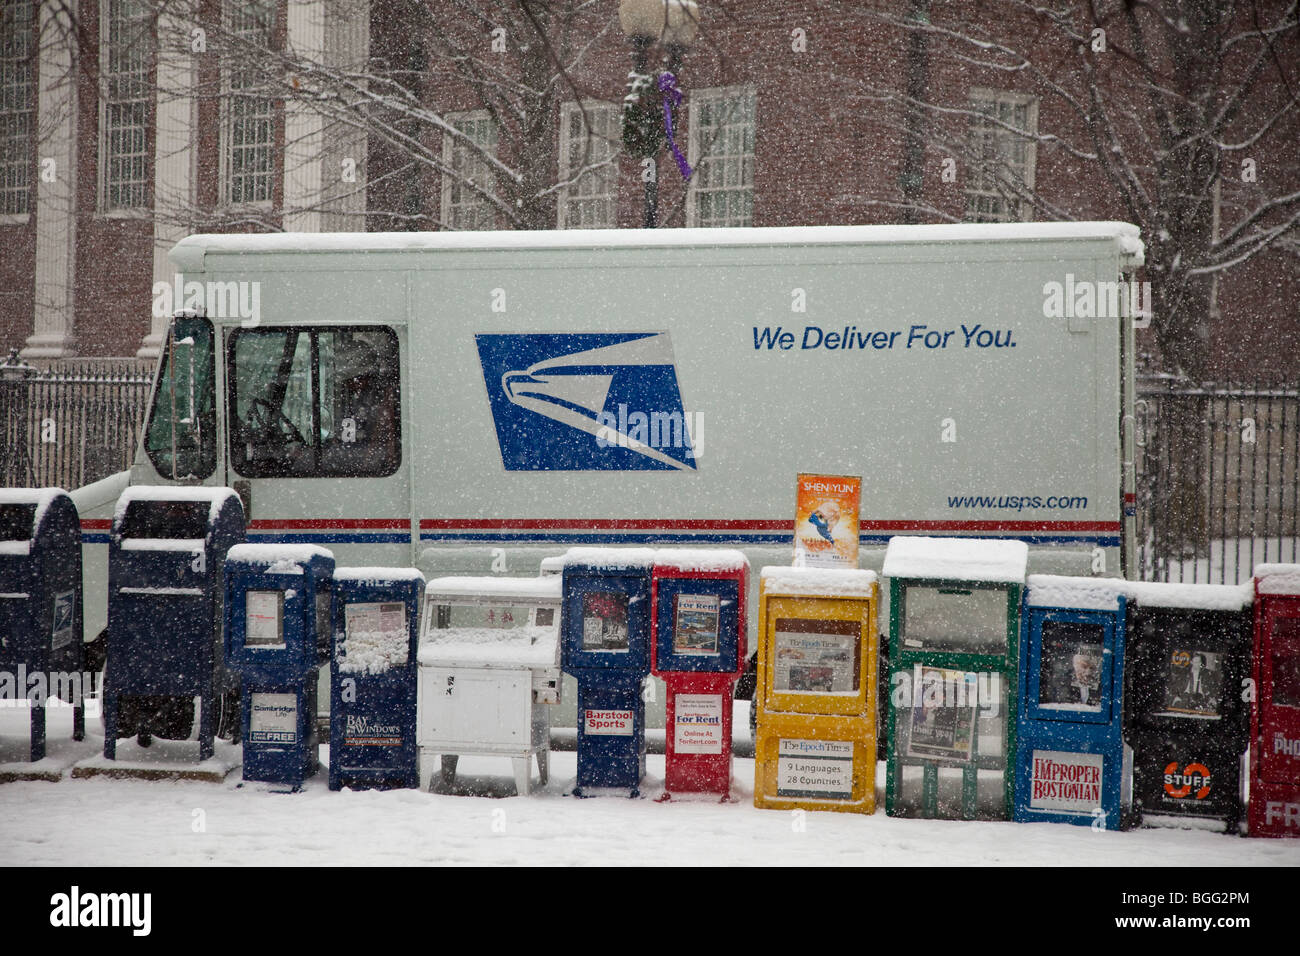 US Postal Service truck during a snowstorm - Stock Image